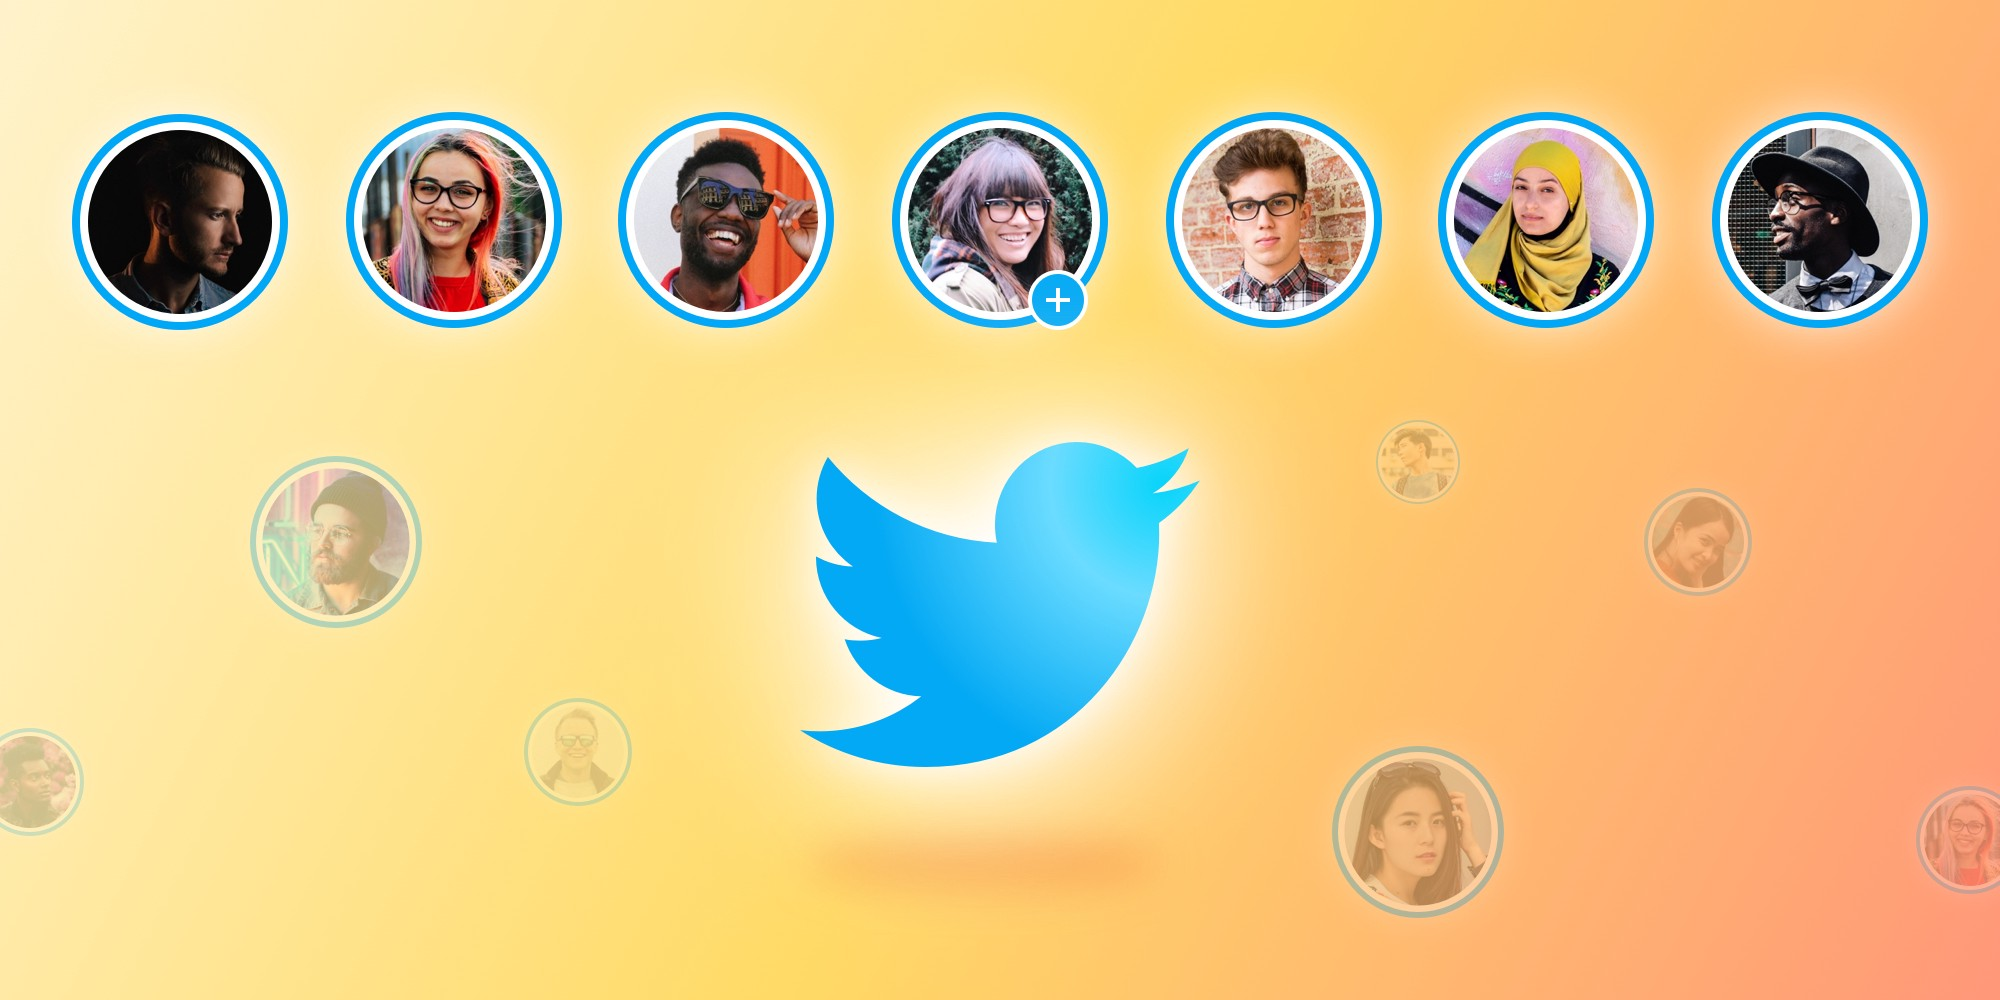 An illustration of the Twitter icon surrounded by different avatars